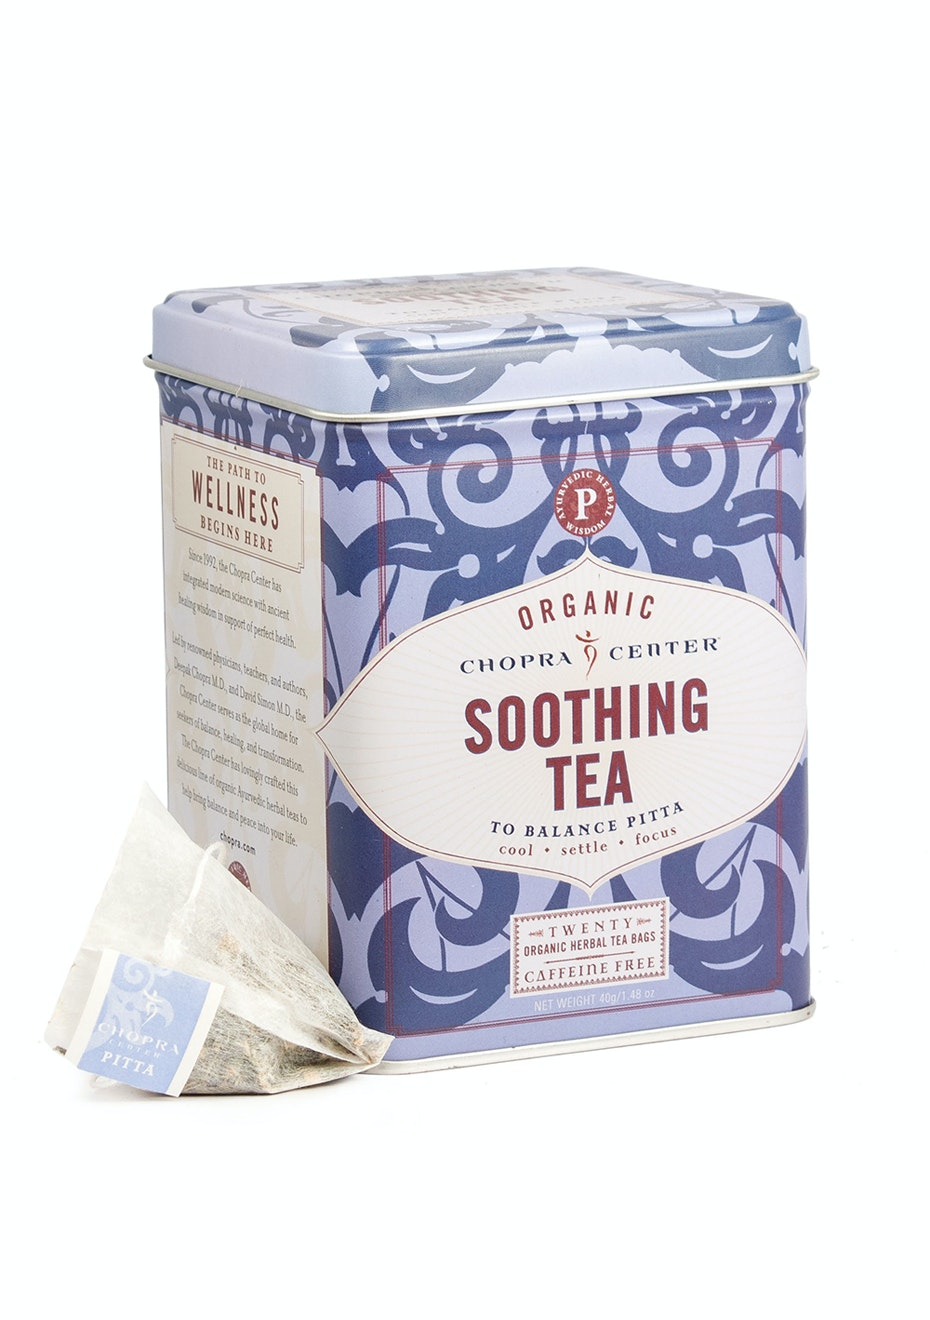 Harney & Sons - Chopra Soothing Herbal - 20 Sachet Tin